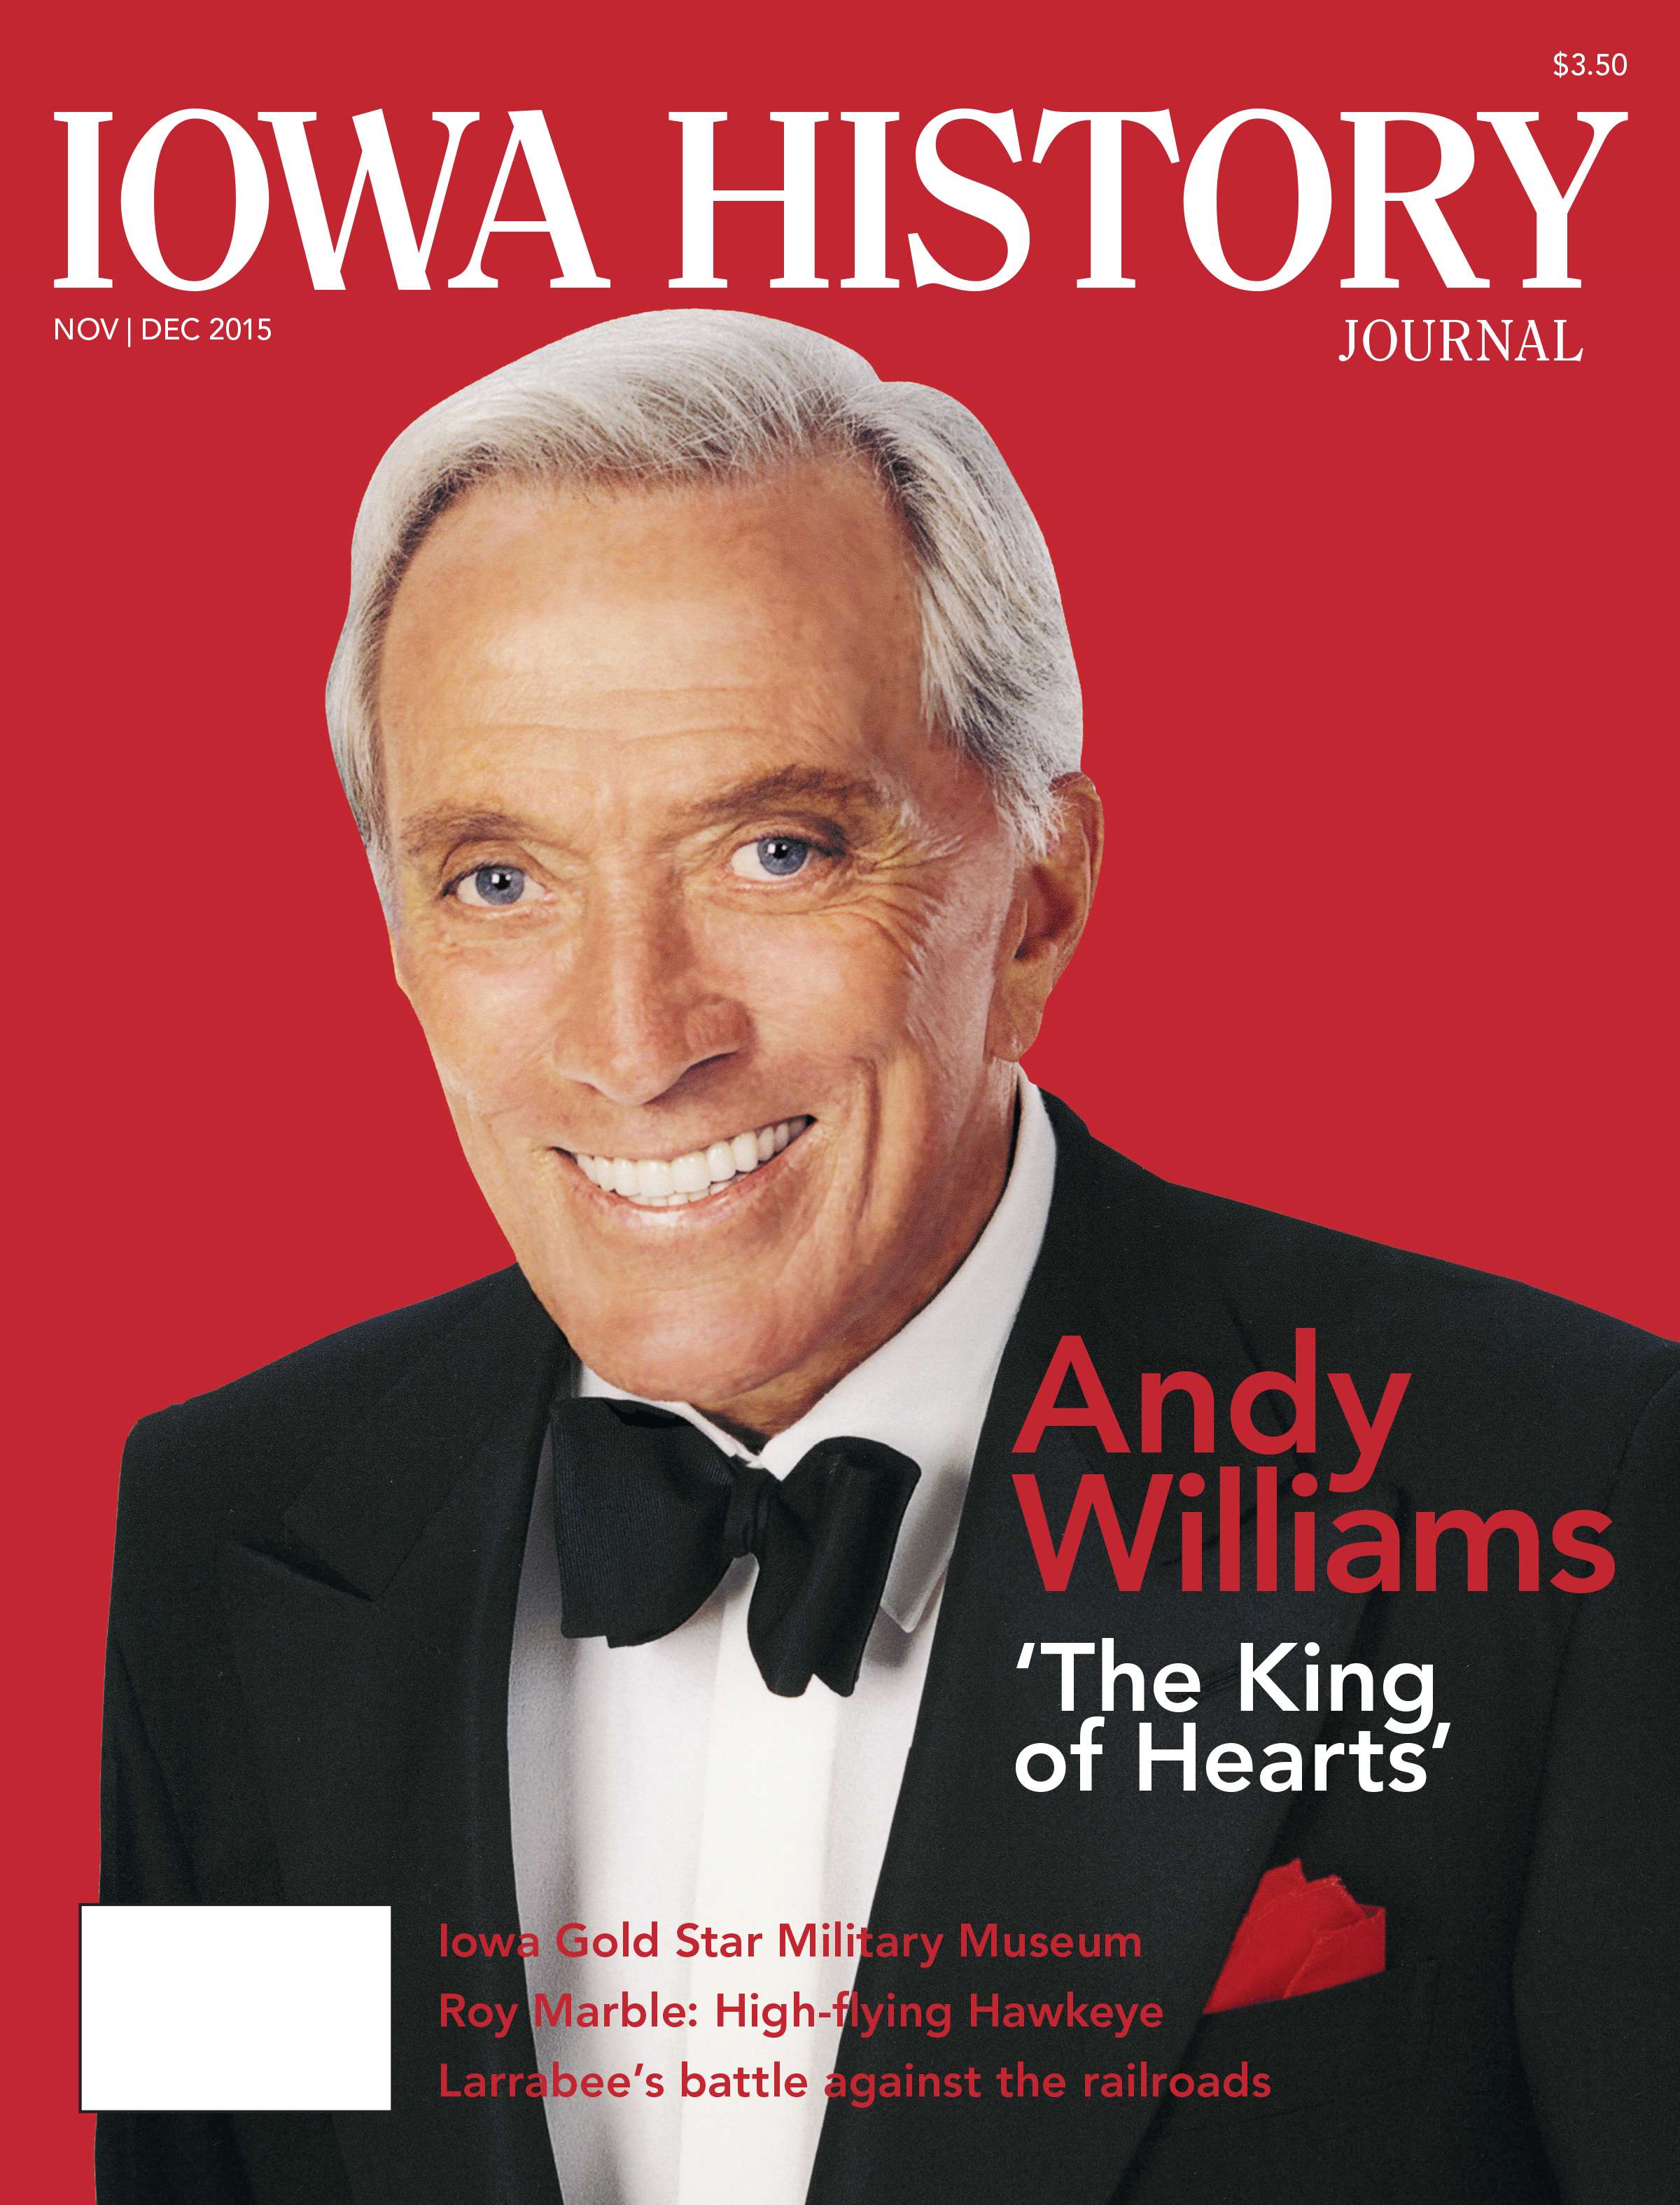 Volume 7, Issue 6  - Andy Williams